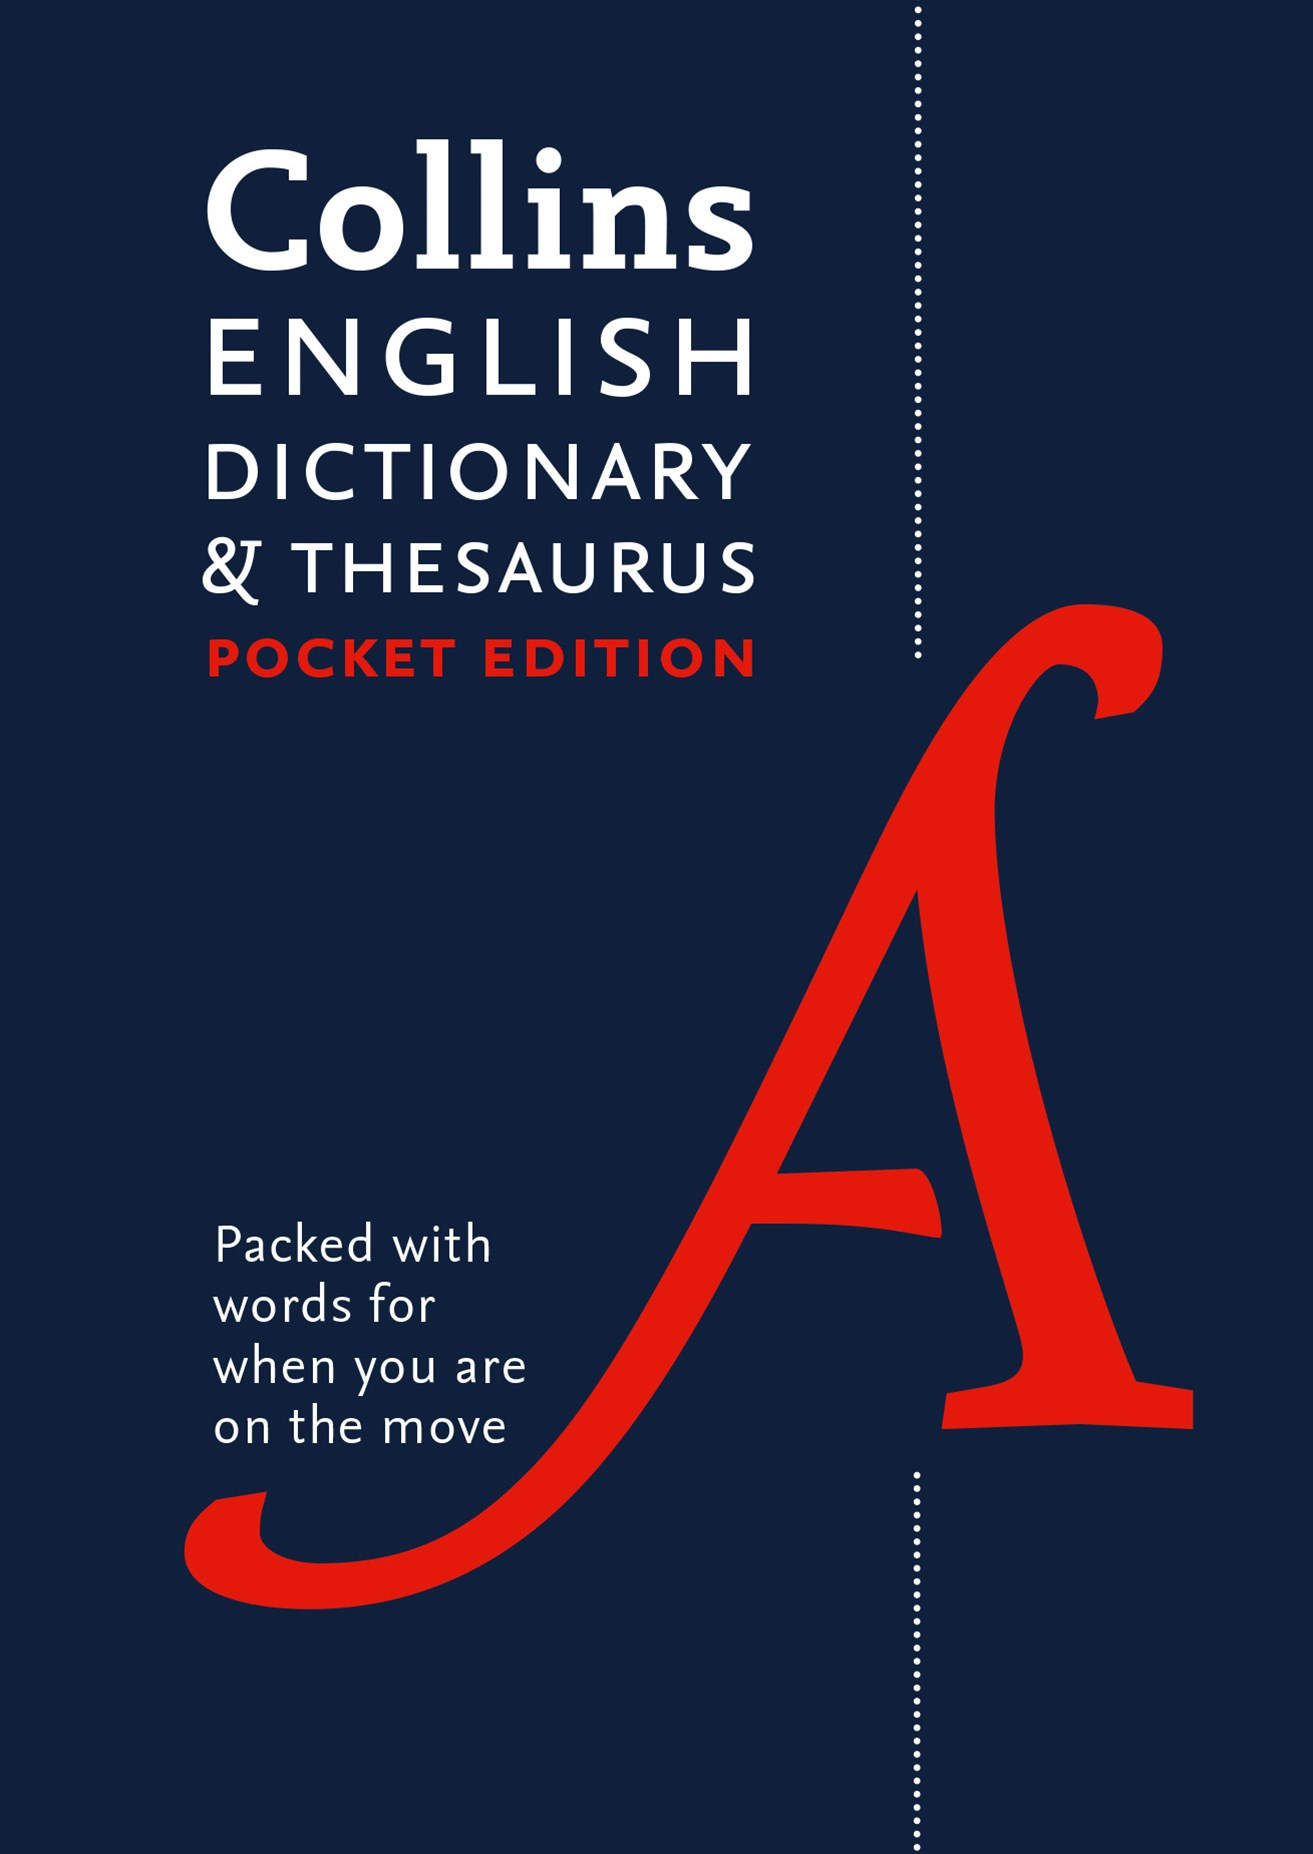 Collins English Dictionary and Thesaurus Pocket Edition [7th Edition]